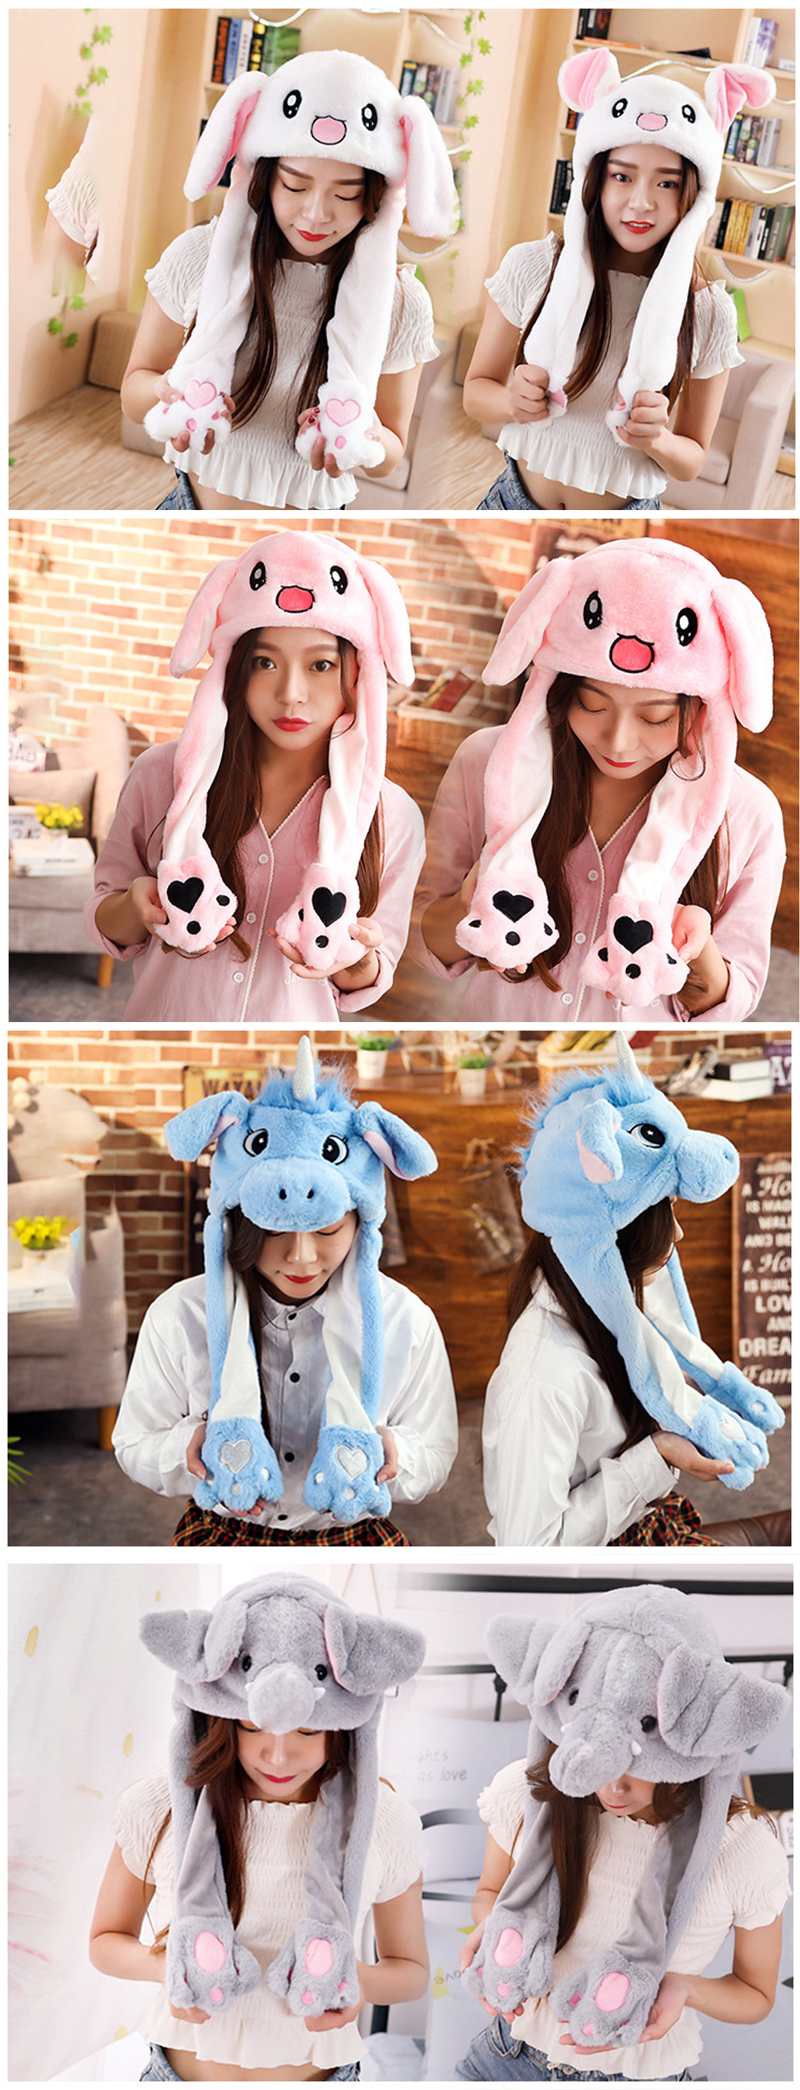 Girl's Accessories 2019 Hot Sell Fashion Moving Hat Rabbit Ears Plush Sweet Cute Airbag Cap 2 Color Can Be Choose Fashionable And Attractive Packages Girl's Hats